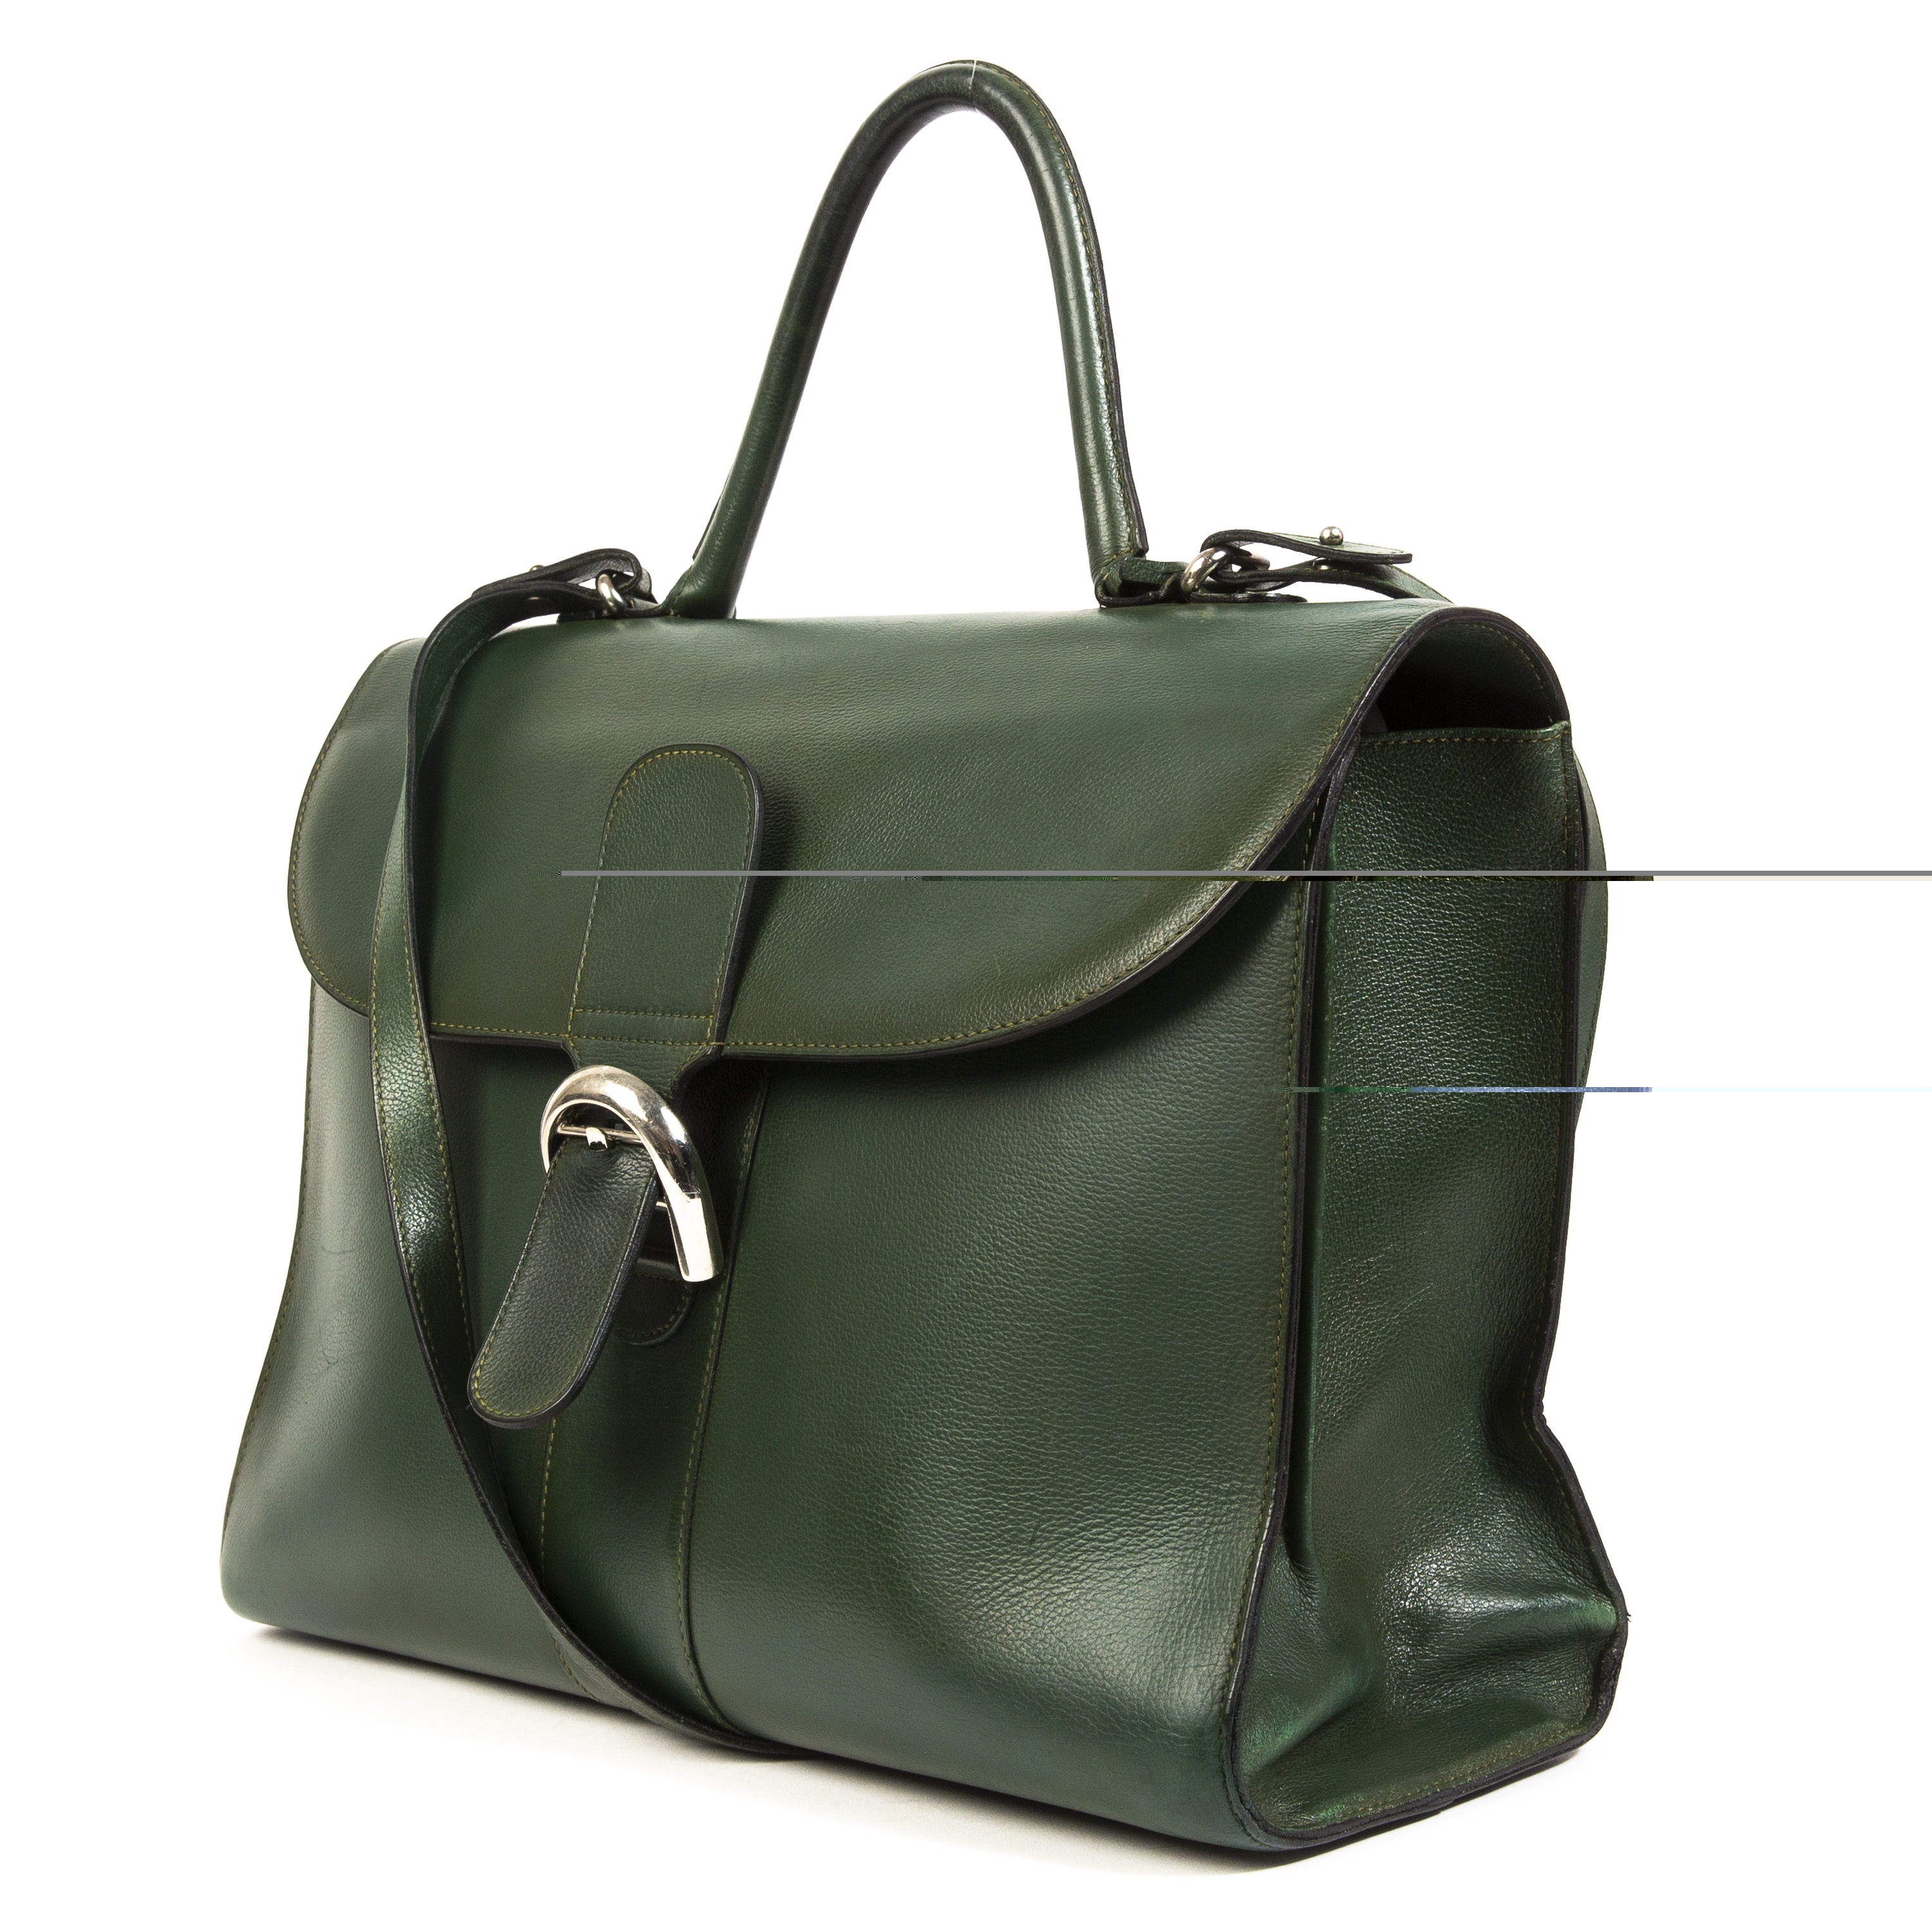 373e93ca97d6be Delvaux Green Brillant GM Buy this authentic second-hand vintage Delvaux  Green Brillant GM at online webshop LabelLOV.